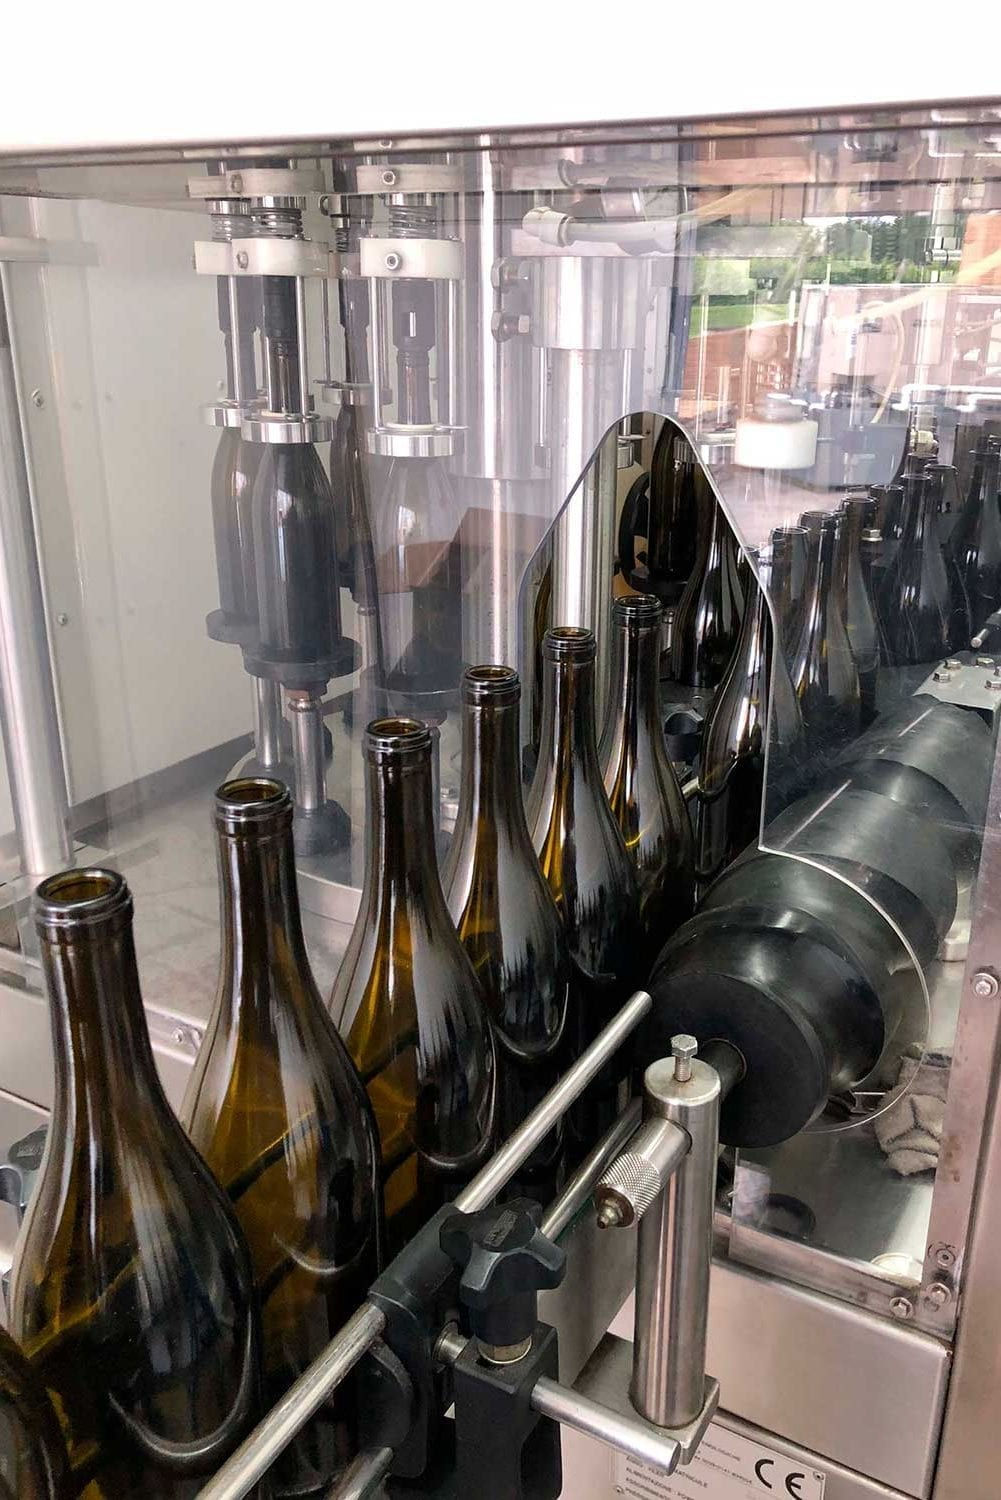 m cellars bottling process